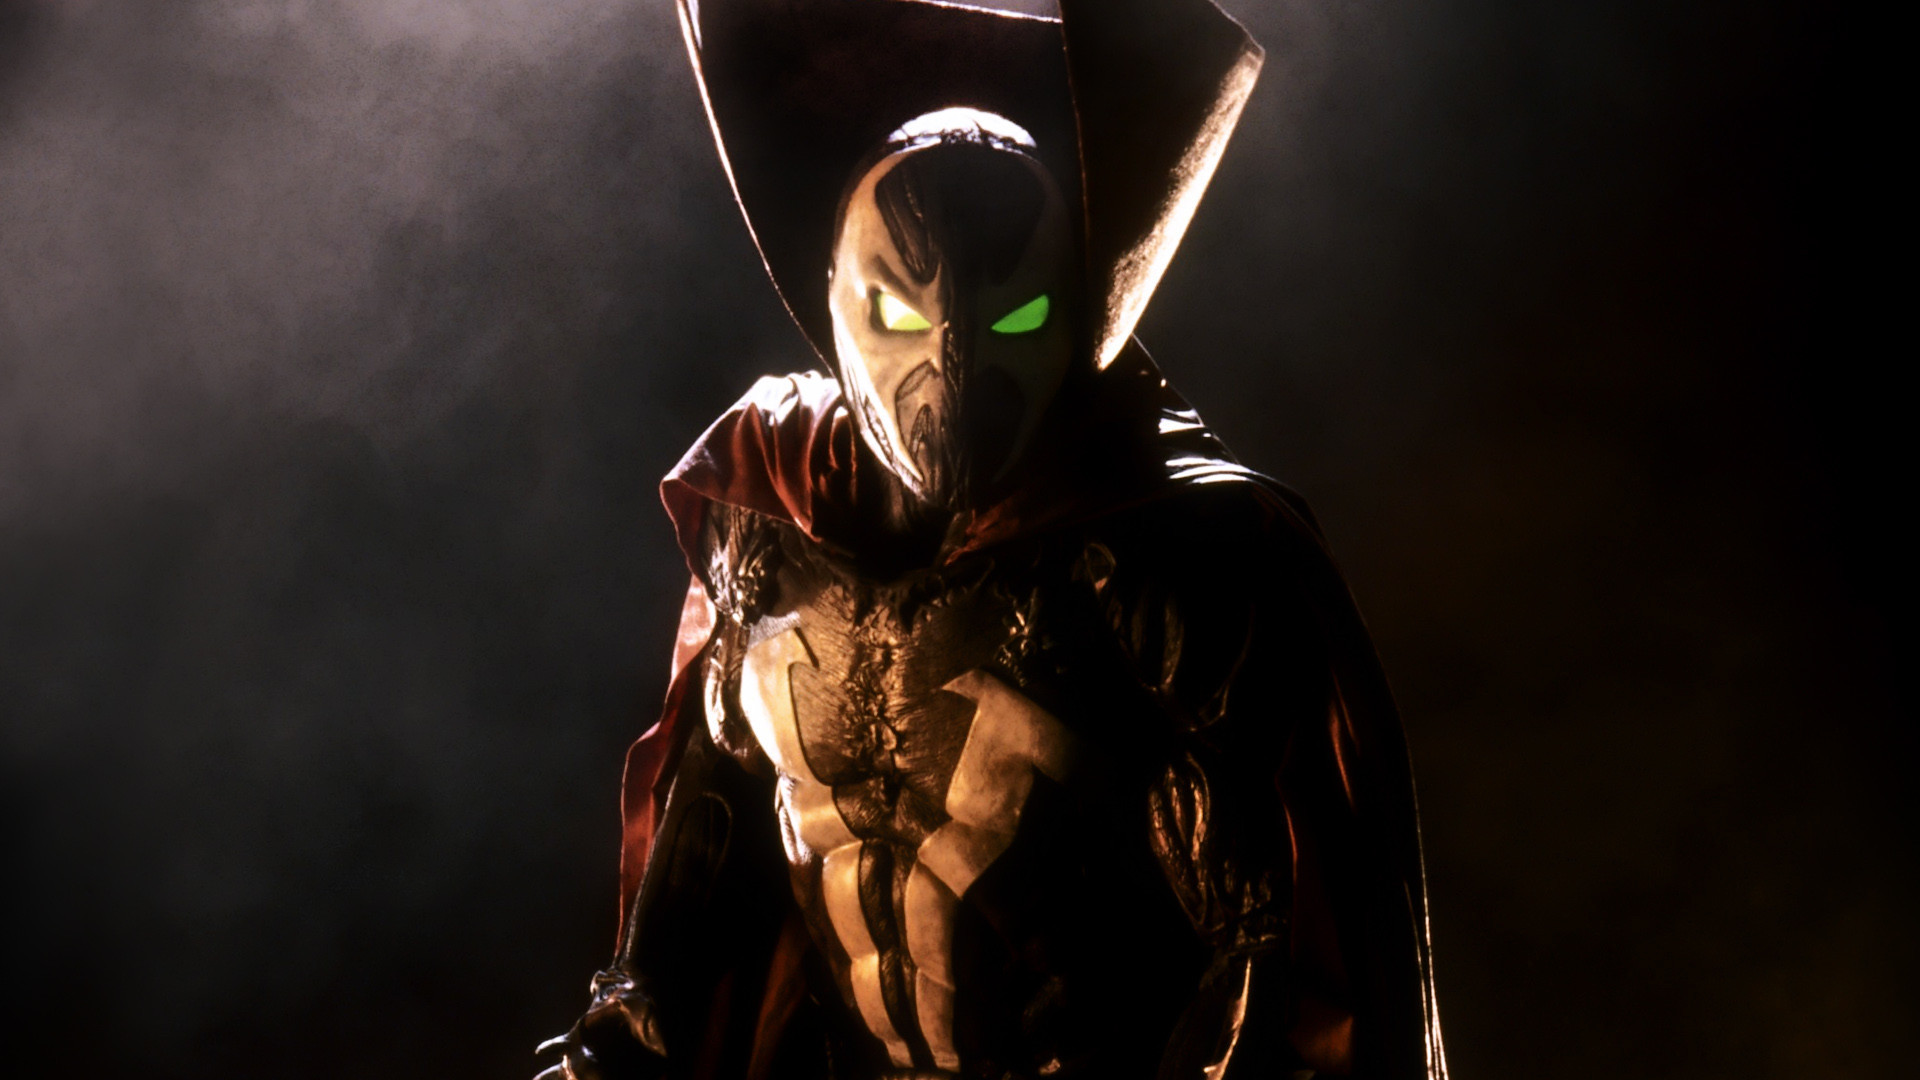 Res: 1920x1080, Spawn Movie Wallpapers Picture. Todd McFarlane Completes Script For New  u0026#39;Spawnu0026#39; Movie .